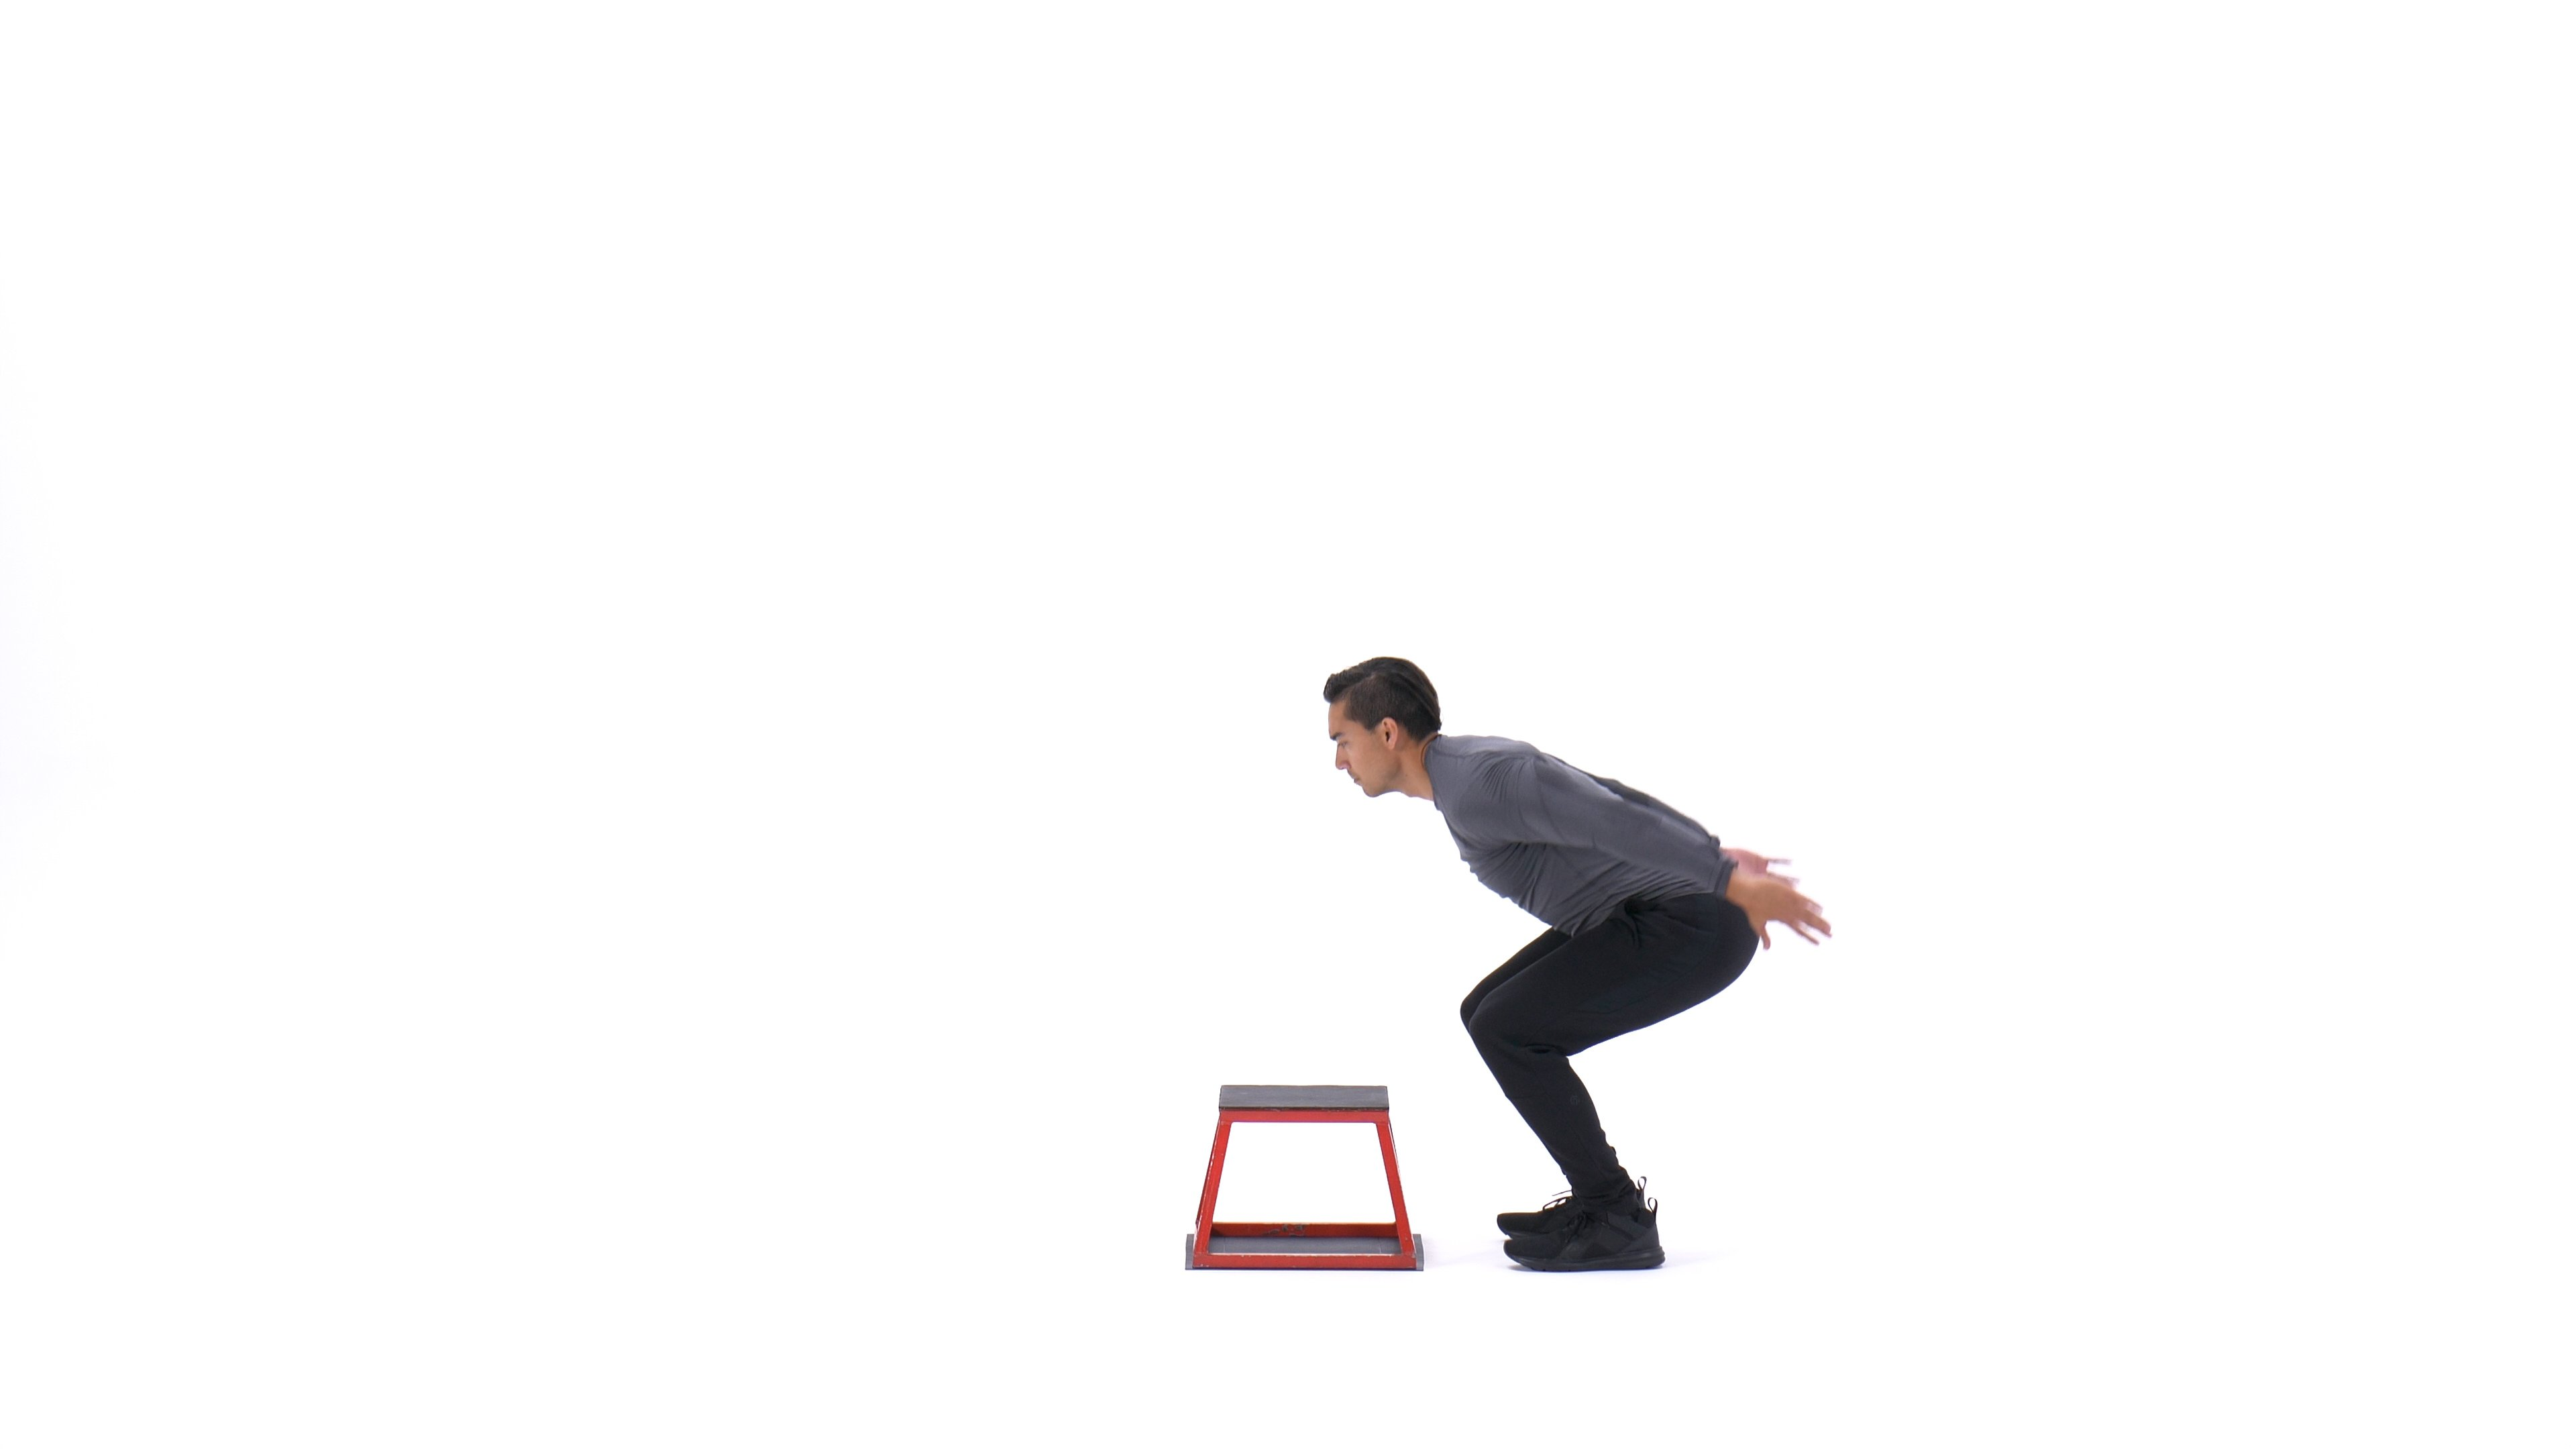 Over bench jump image